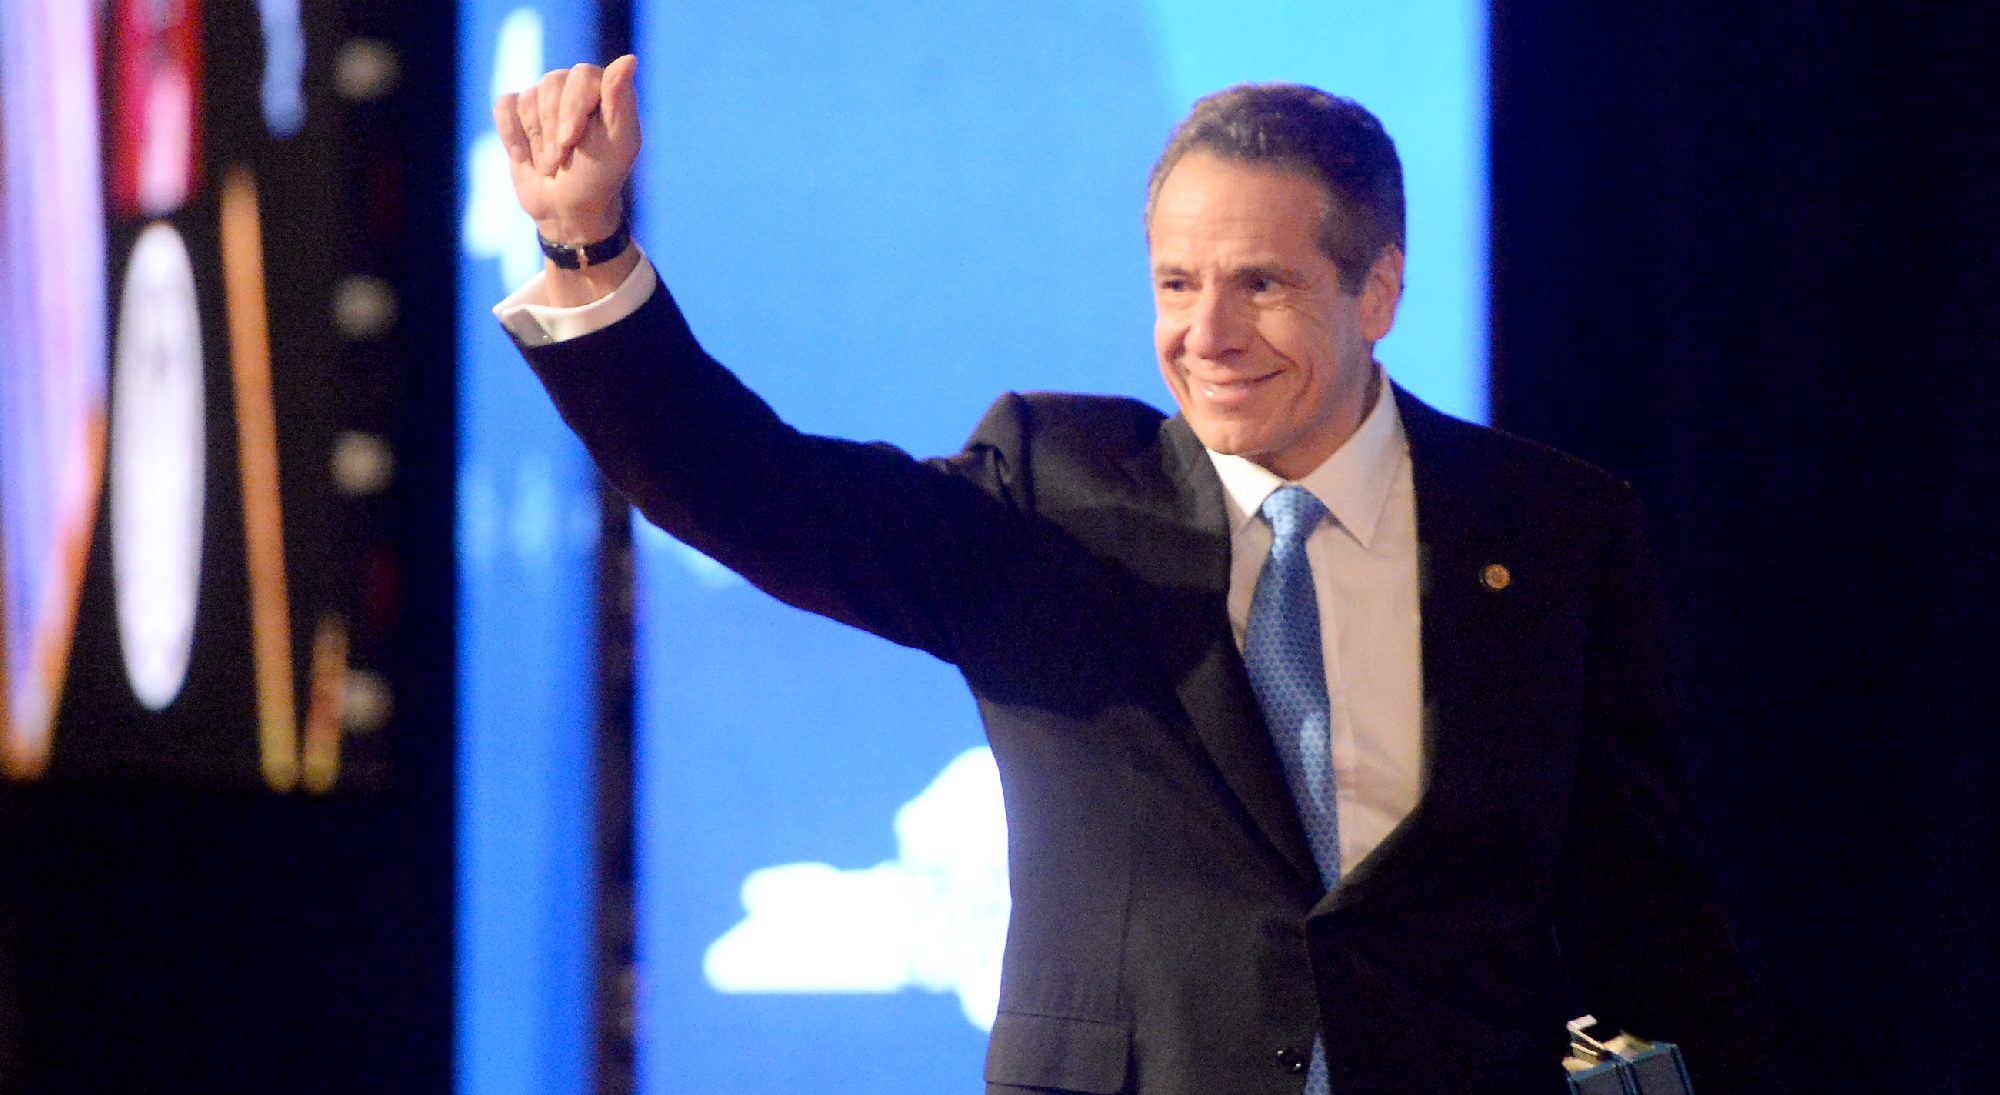 The Daily GazetteEDITORIAL: Everyone be quiet until Cuomo investigations conclude